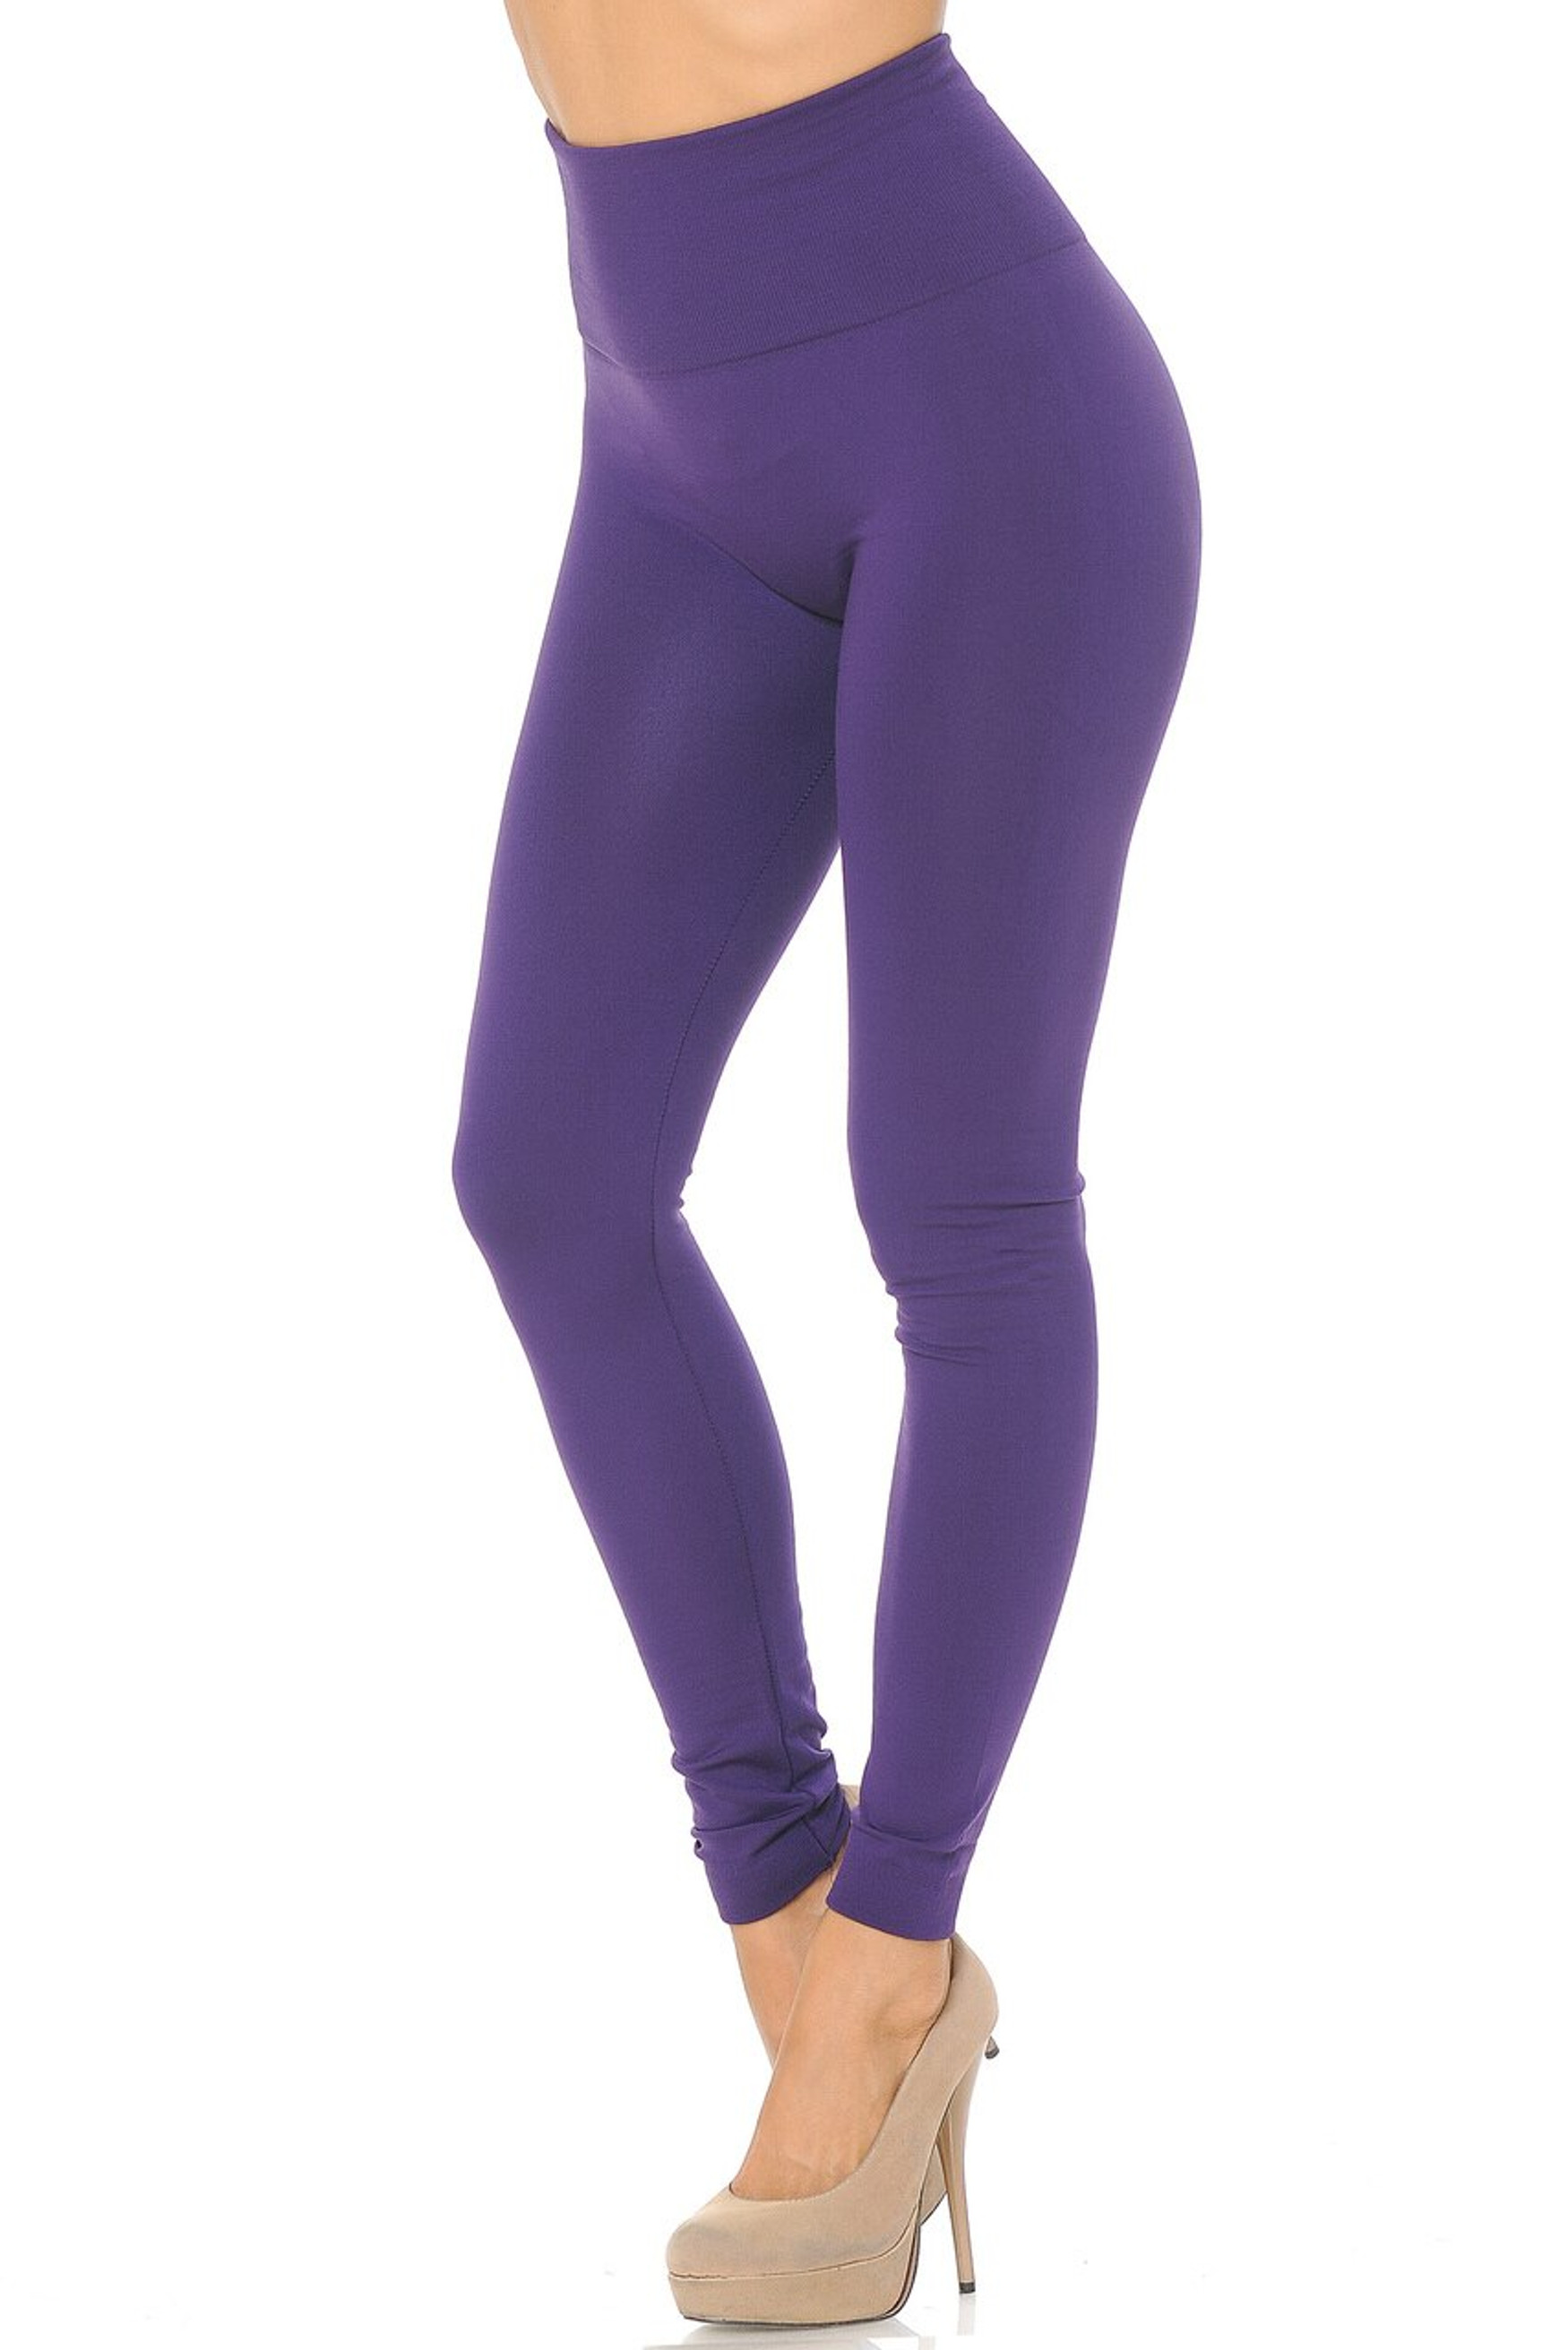 High Waisted Fleece Lined Plus Size Leggings - New Mix